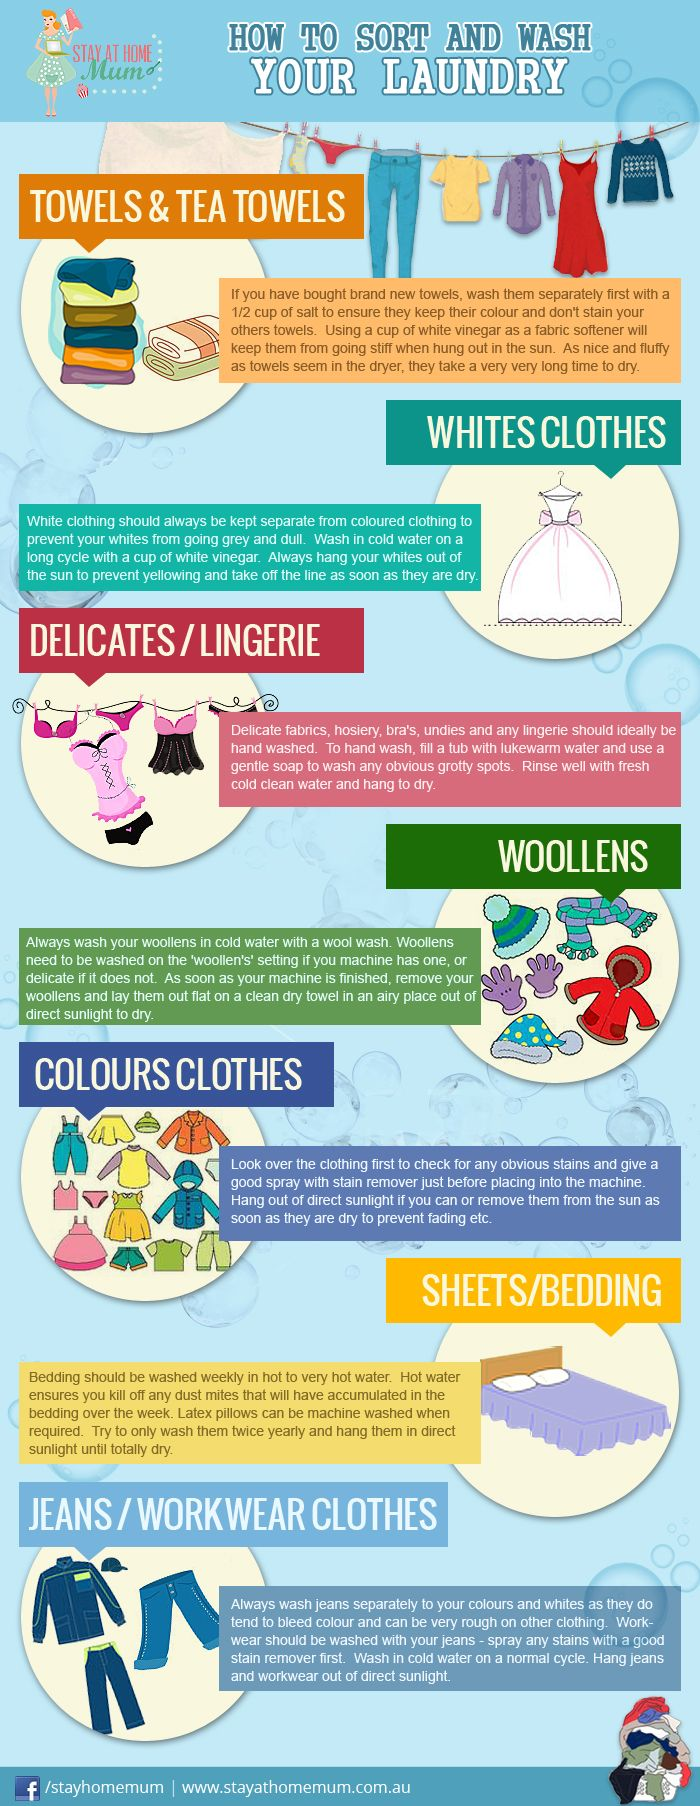 How to Sort & Wash your Laundry | Stay at Home Mum